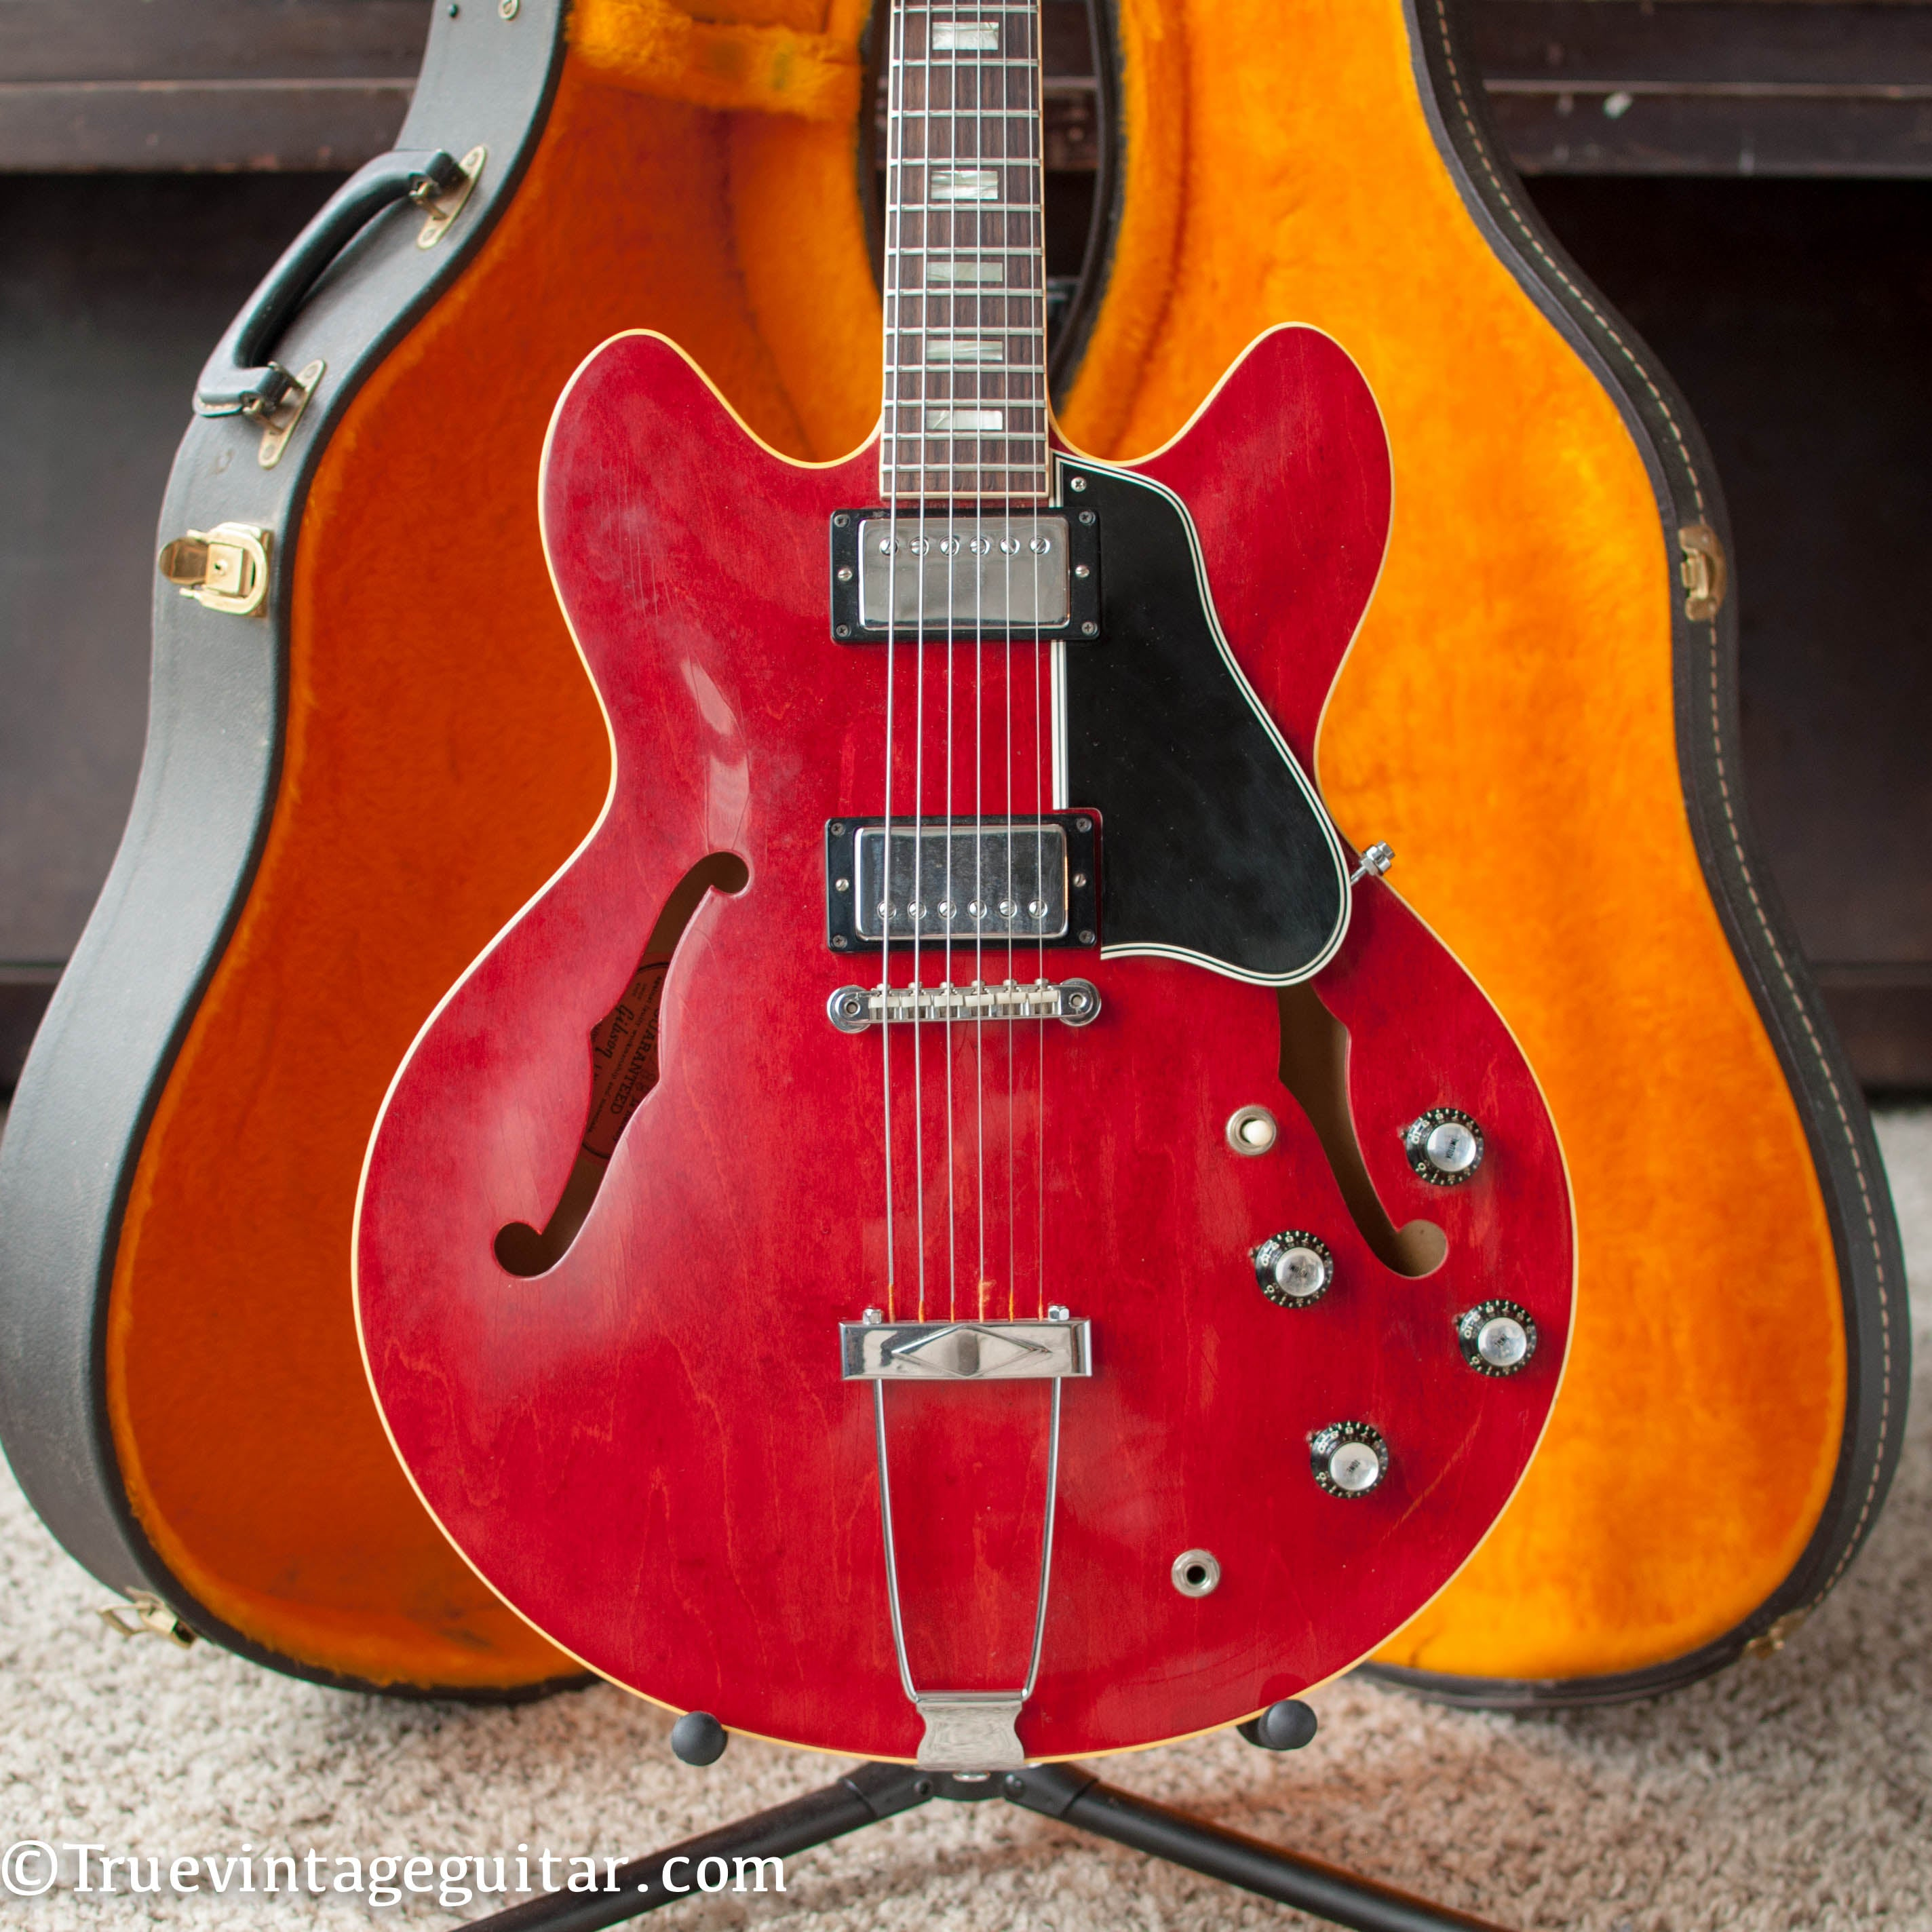 1966 Gibson ES-335 guitar Cherry Red